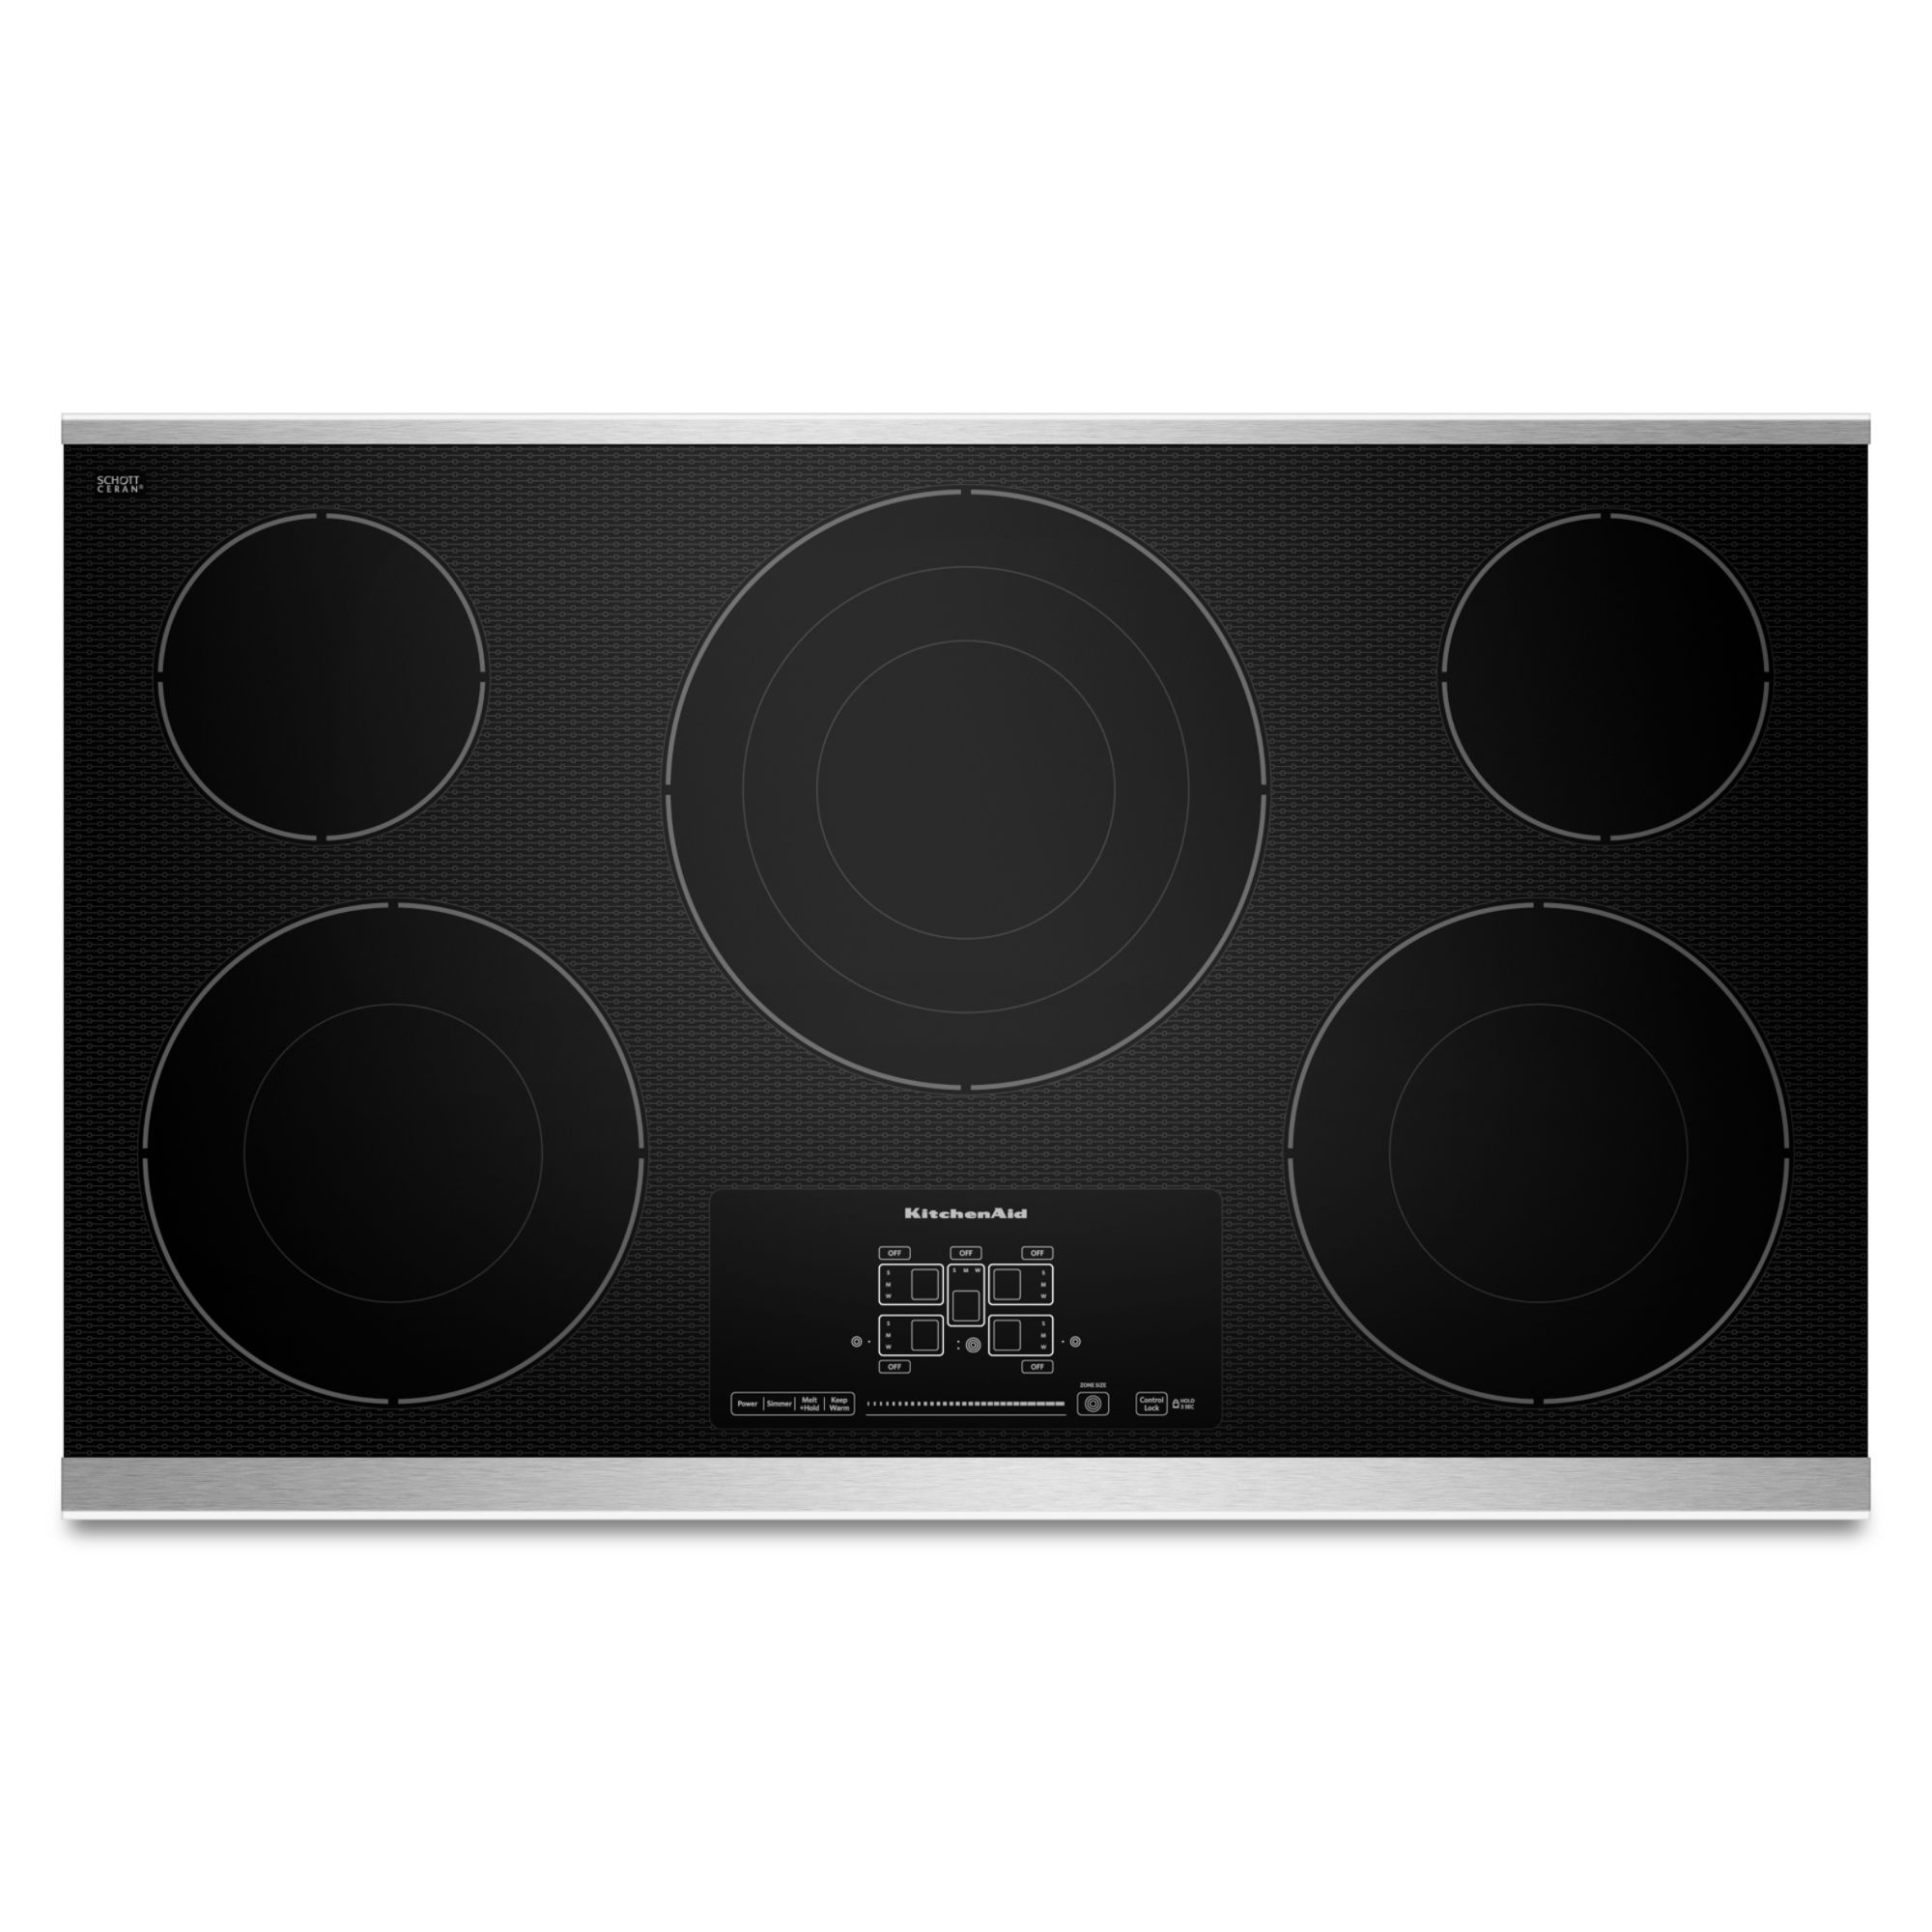 """KitchenAid KECC667BSS 36"""" 5-Element Electric Cooktop with Even-Heat™ Technology  - Stainless Steel"""